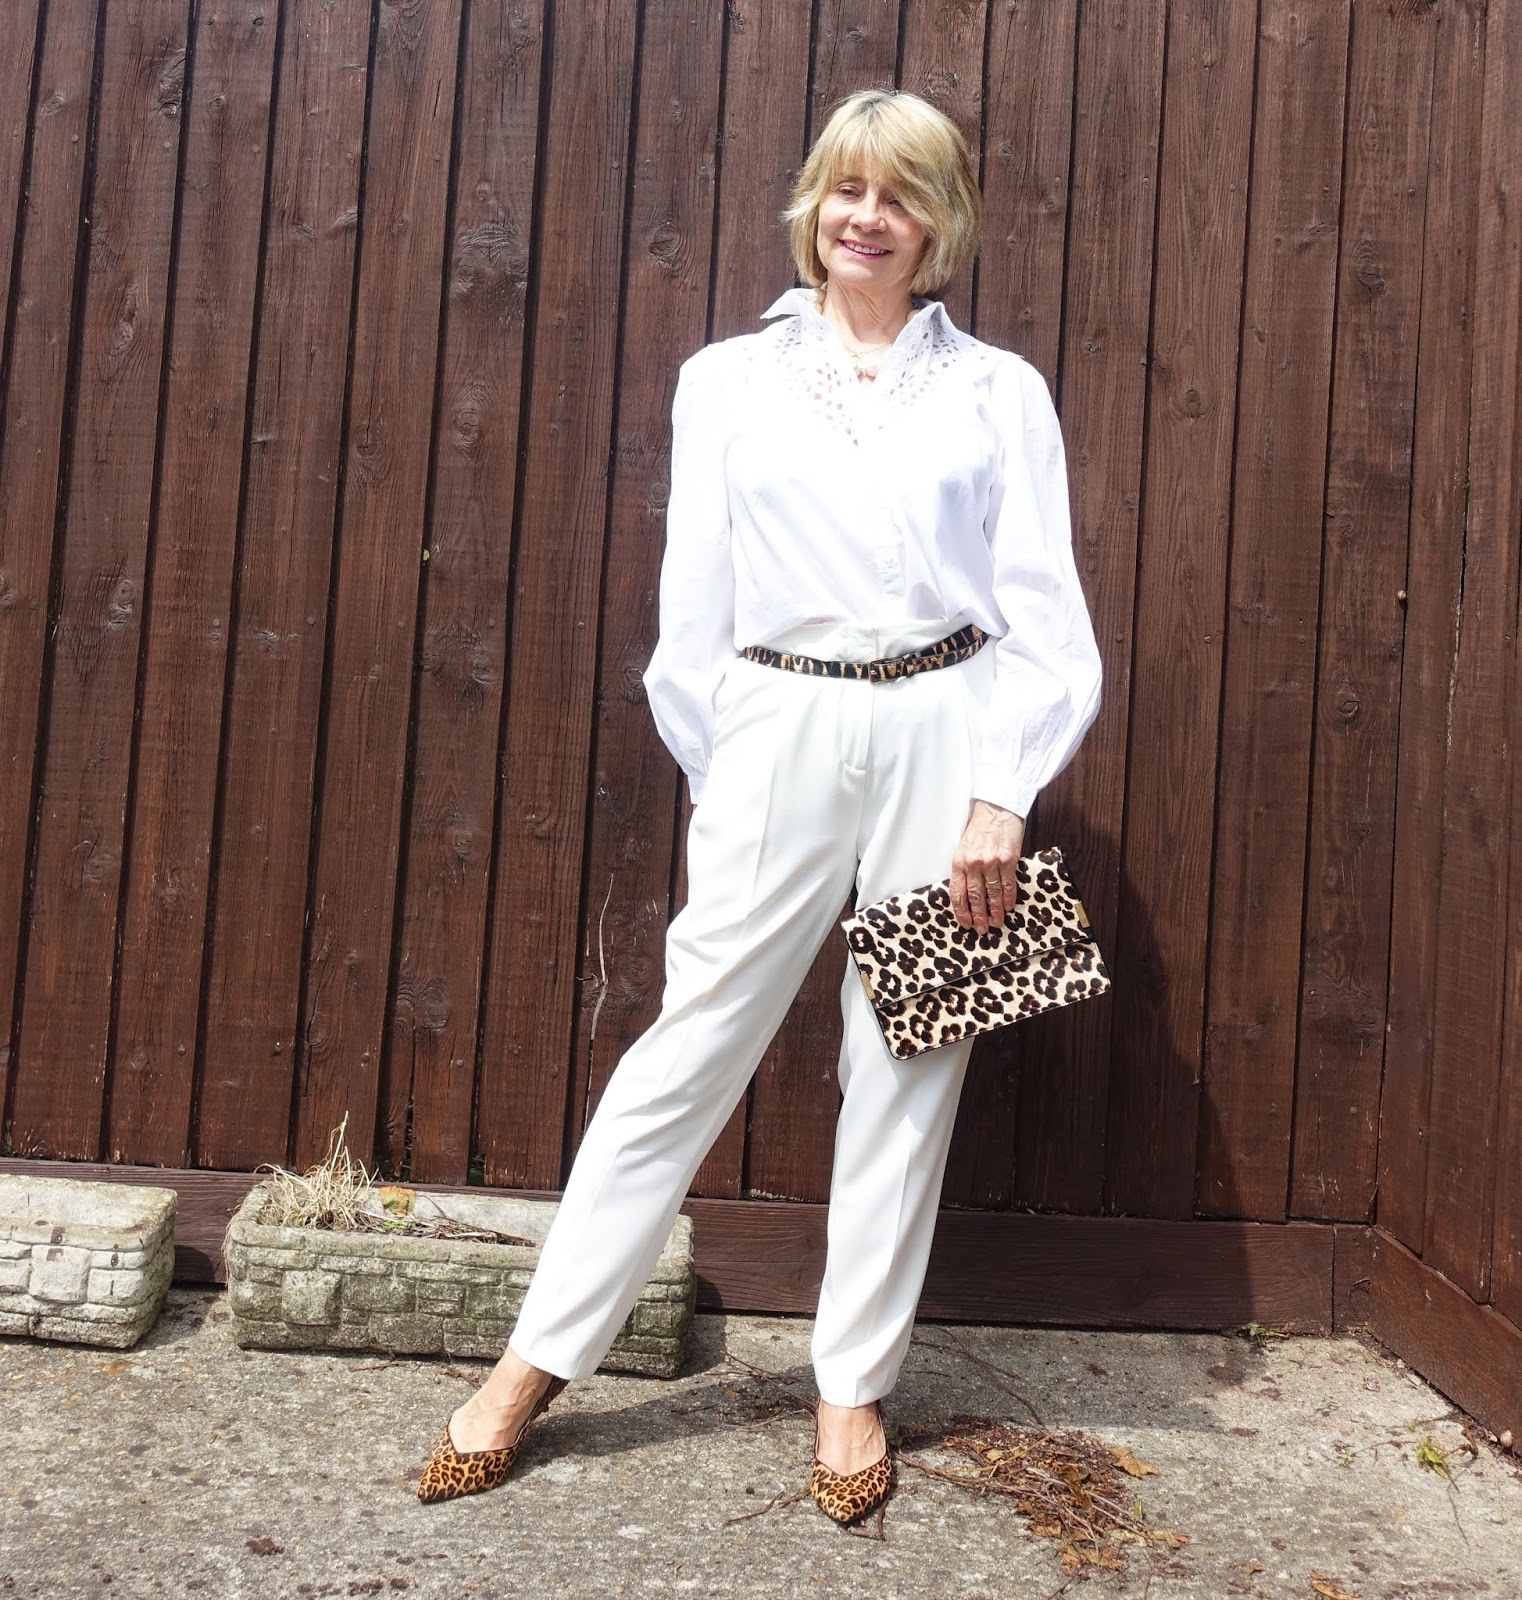 Over 50s fashion blogger Gail Hanlon from Is This Mutton in white trousers, broderie blouse and leopard print accessories